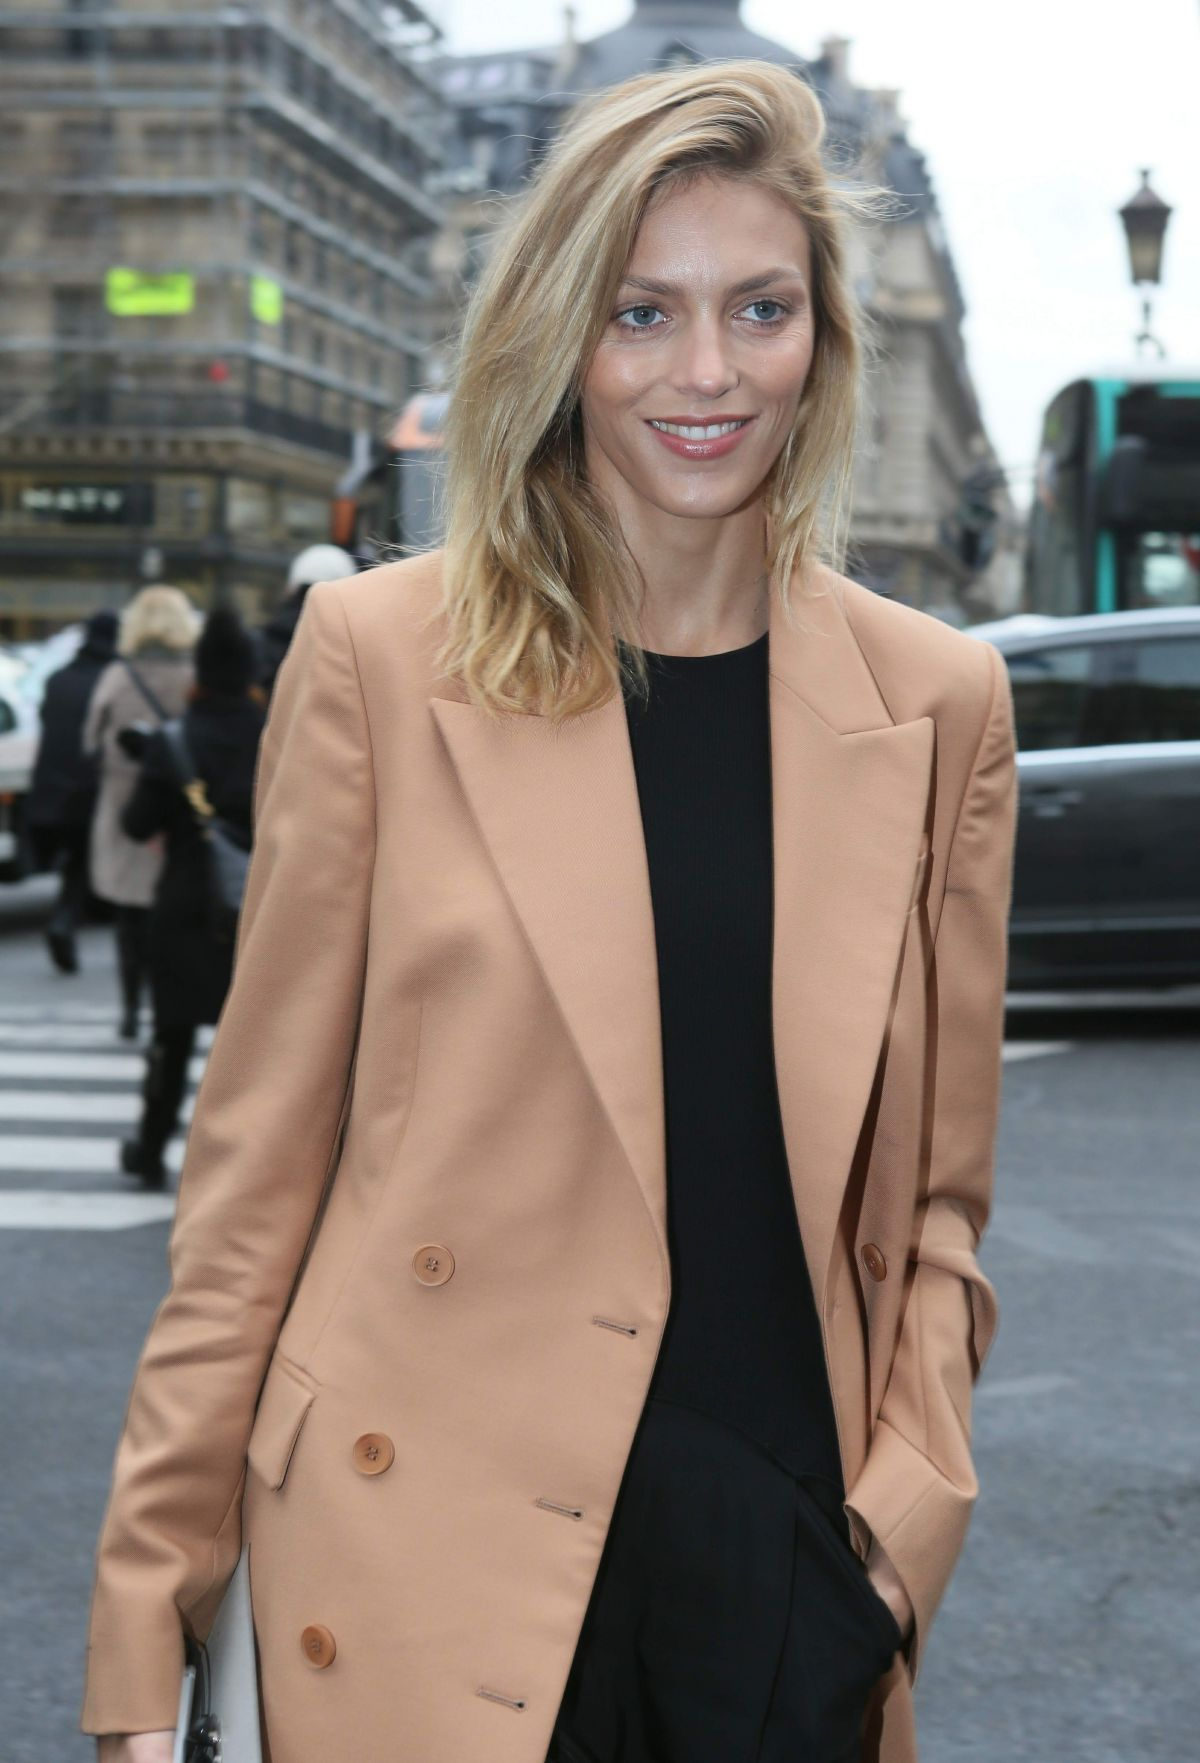 ANJA RUBIK at Stella McCartney Fashion Show in Paris 03/07/2016 ...